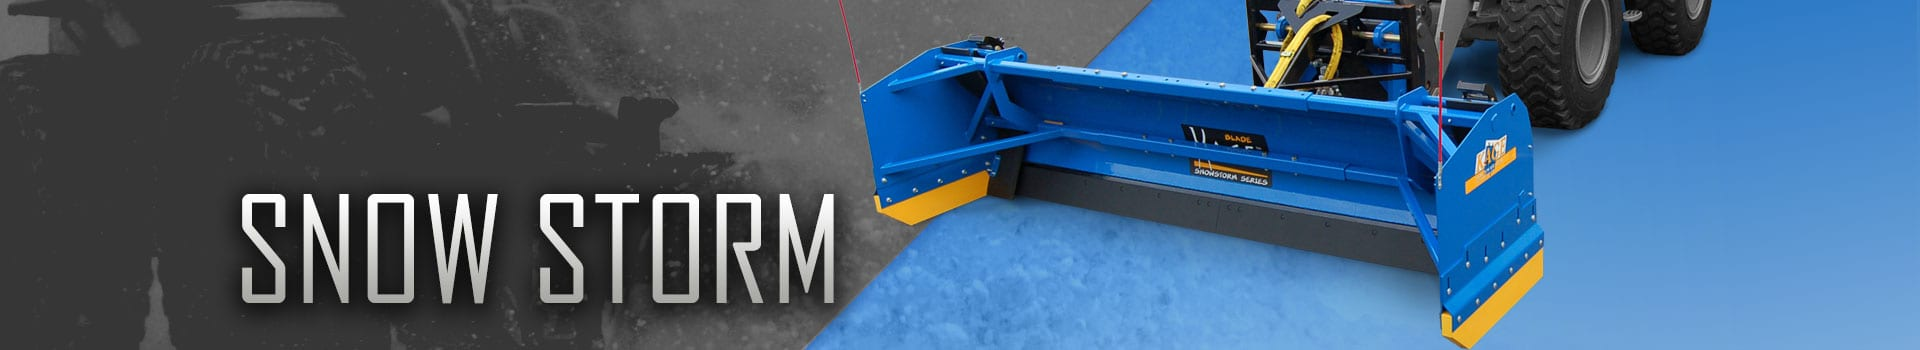 Front Loader Snow Plow | KAGE® Snowstorm | Tractor Snow Plows